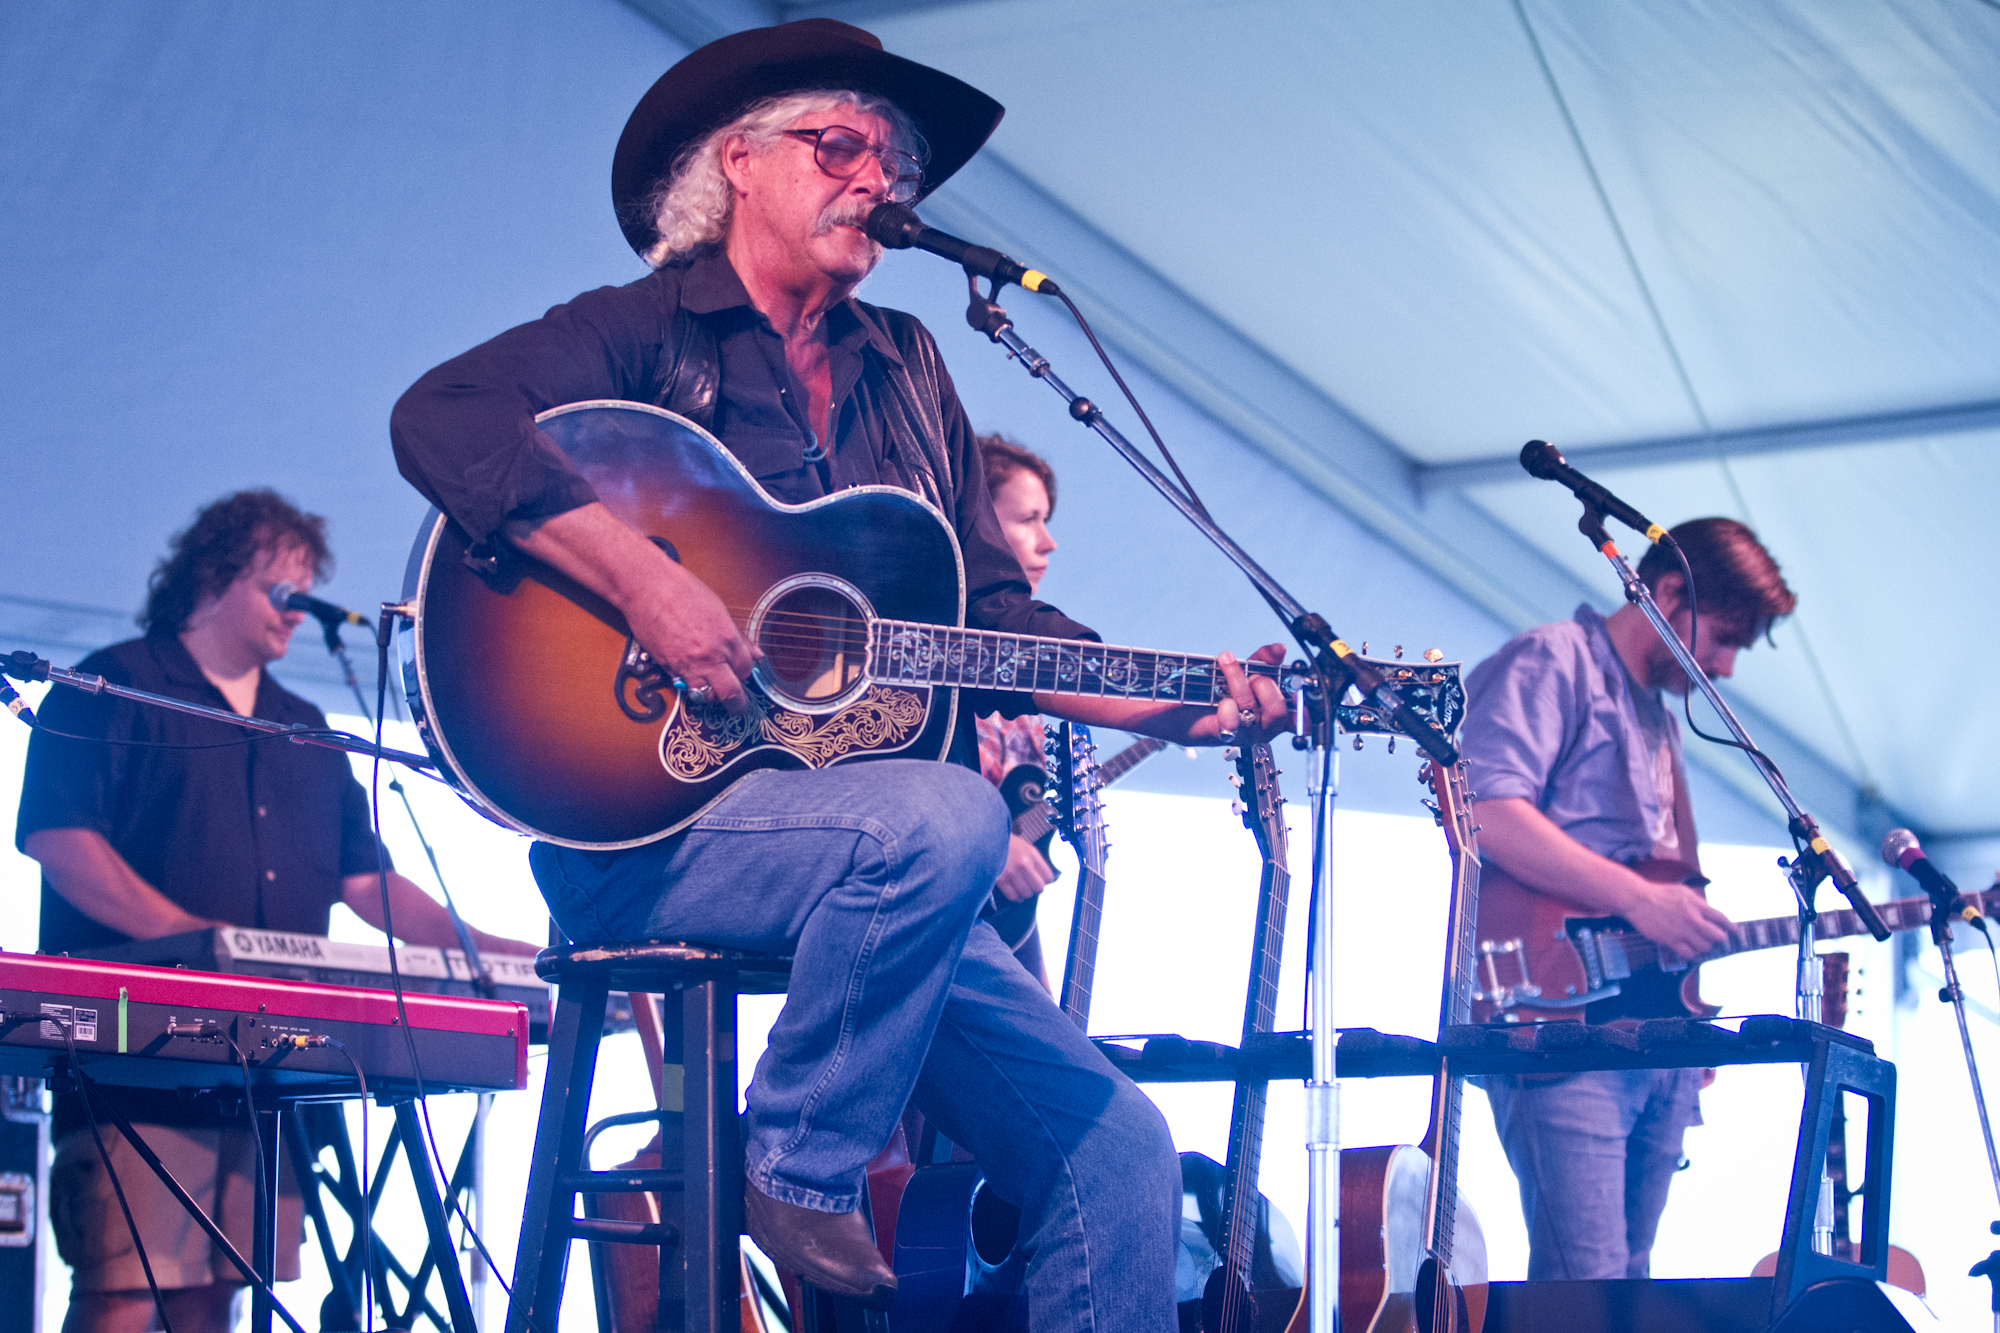 Arlo Guthrie plays with The Guthrie Family Reunion at the Newport Folk Festival moments before being surrounded by his grandchildren on stage.